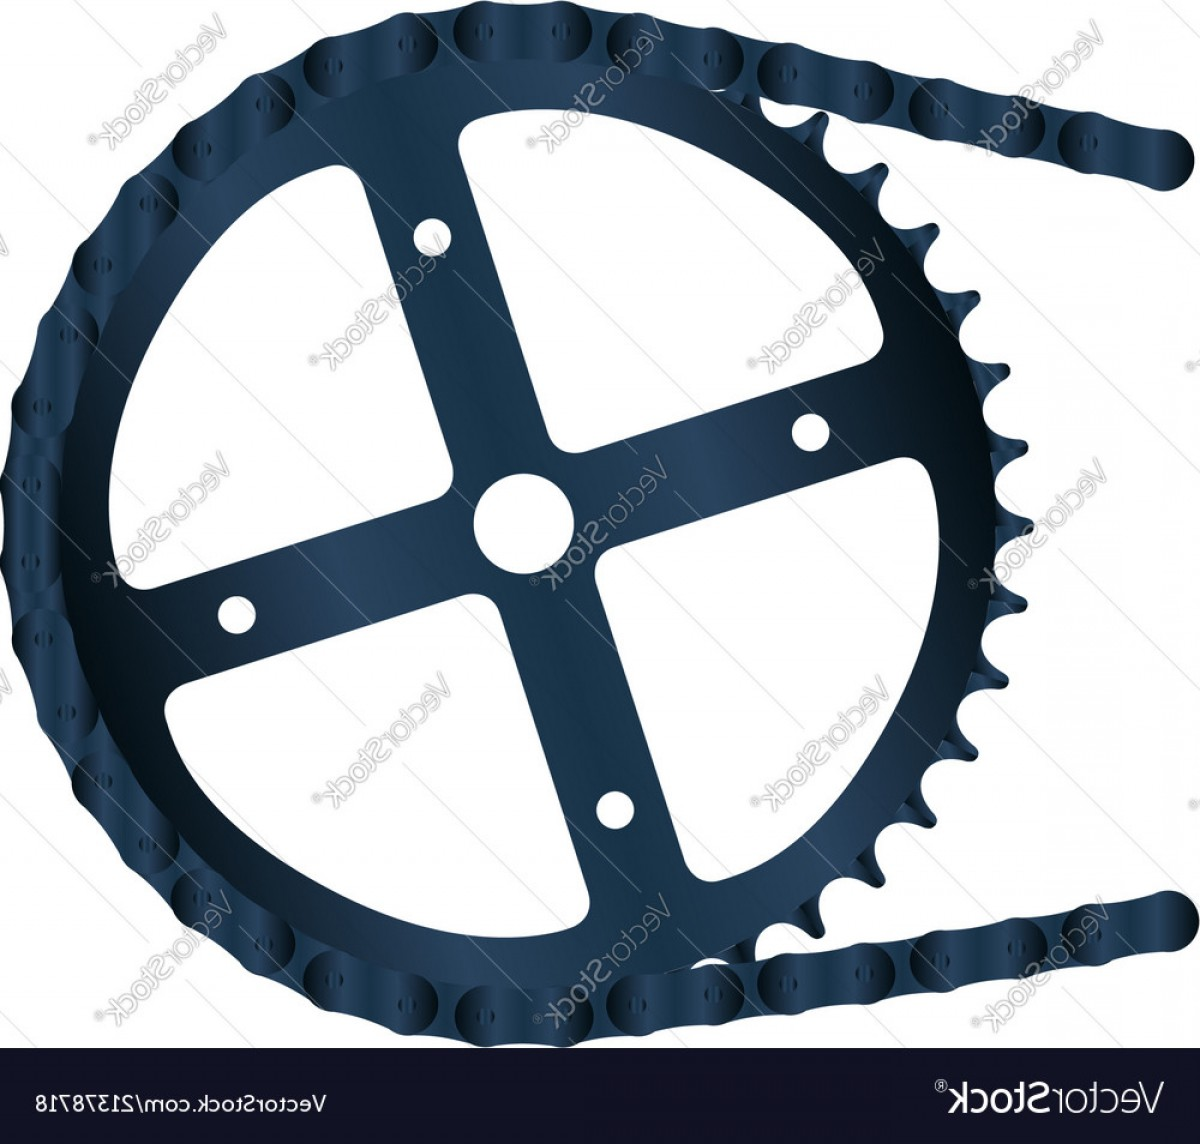 Bicycle Crank Vector Of Artwork: Bicycle Gear And Chain Vector